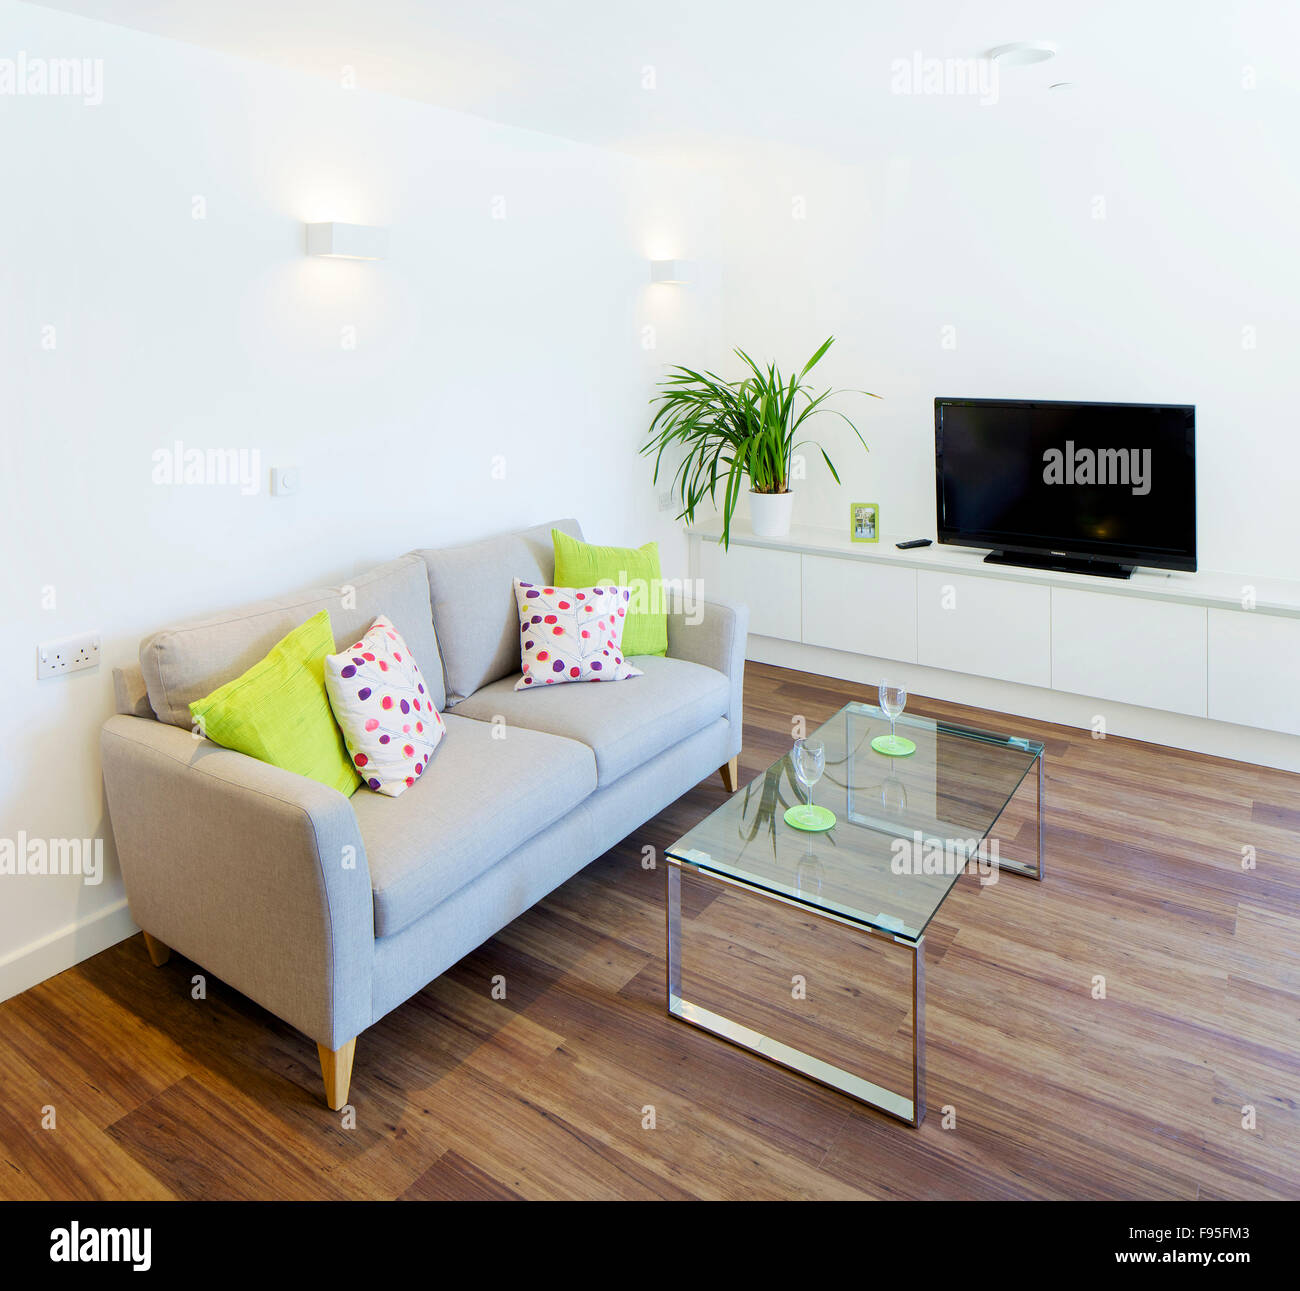 One church square london uk interior view of living room modern architecture and furniture